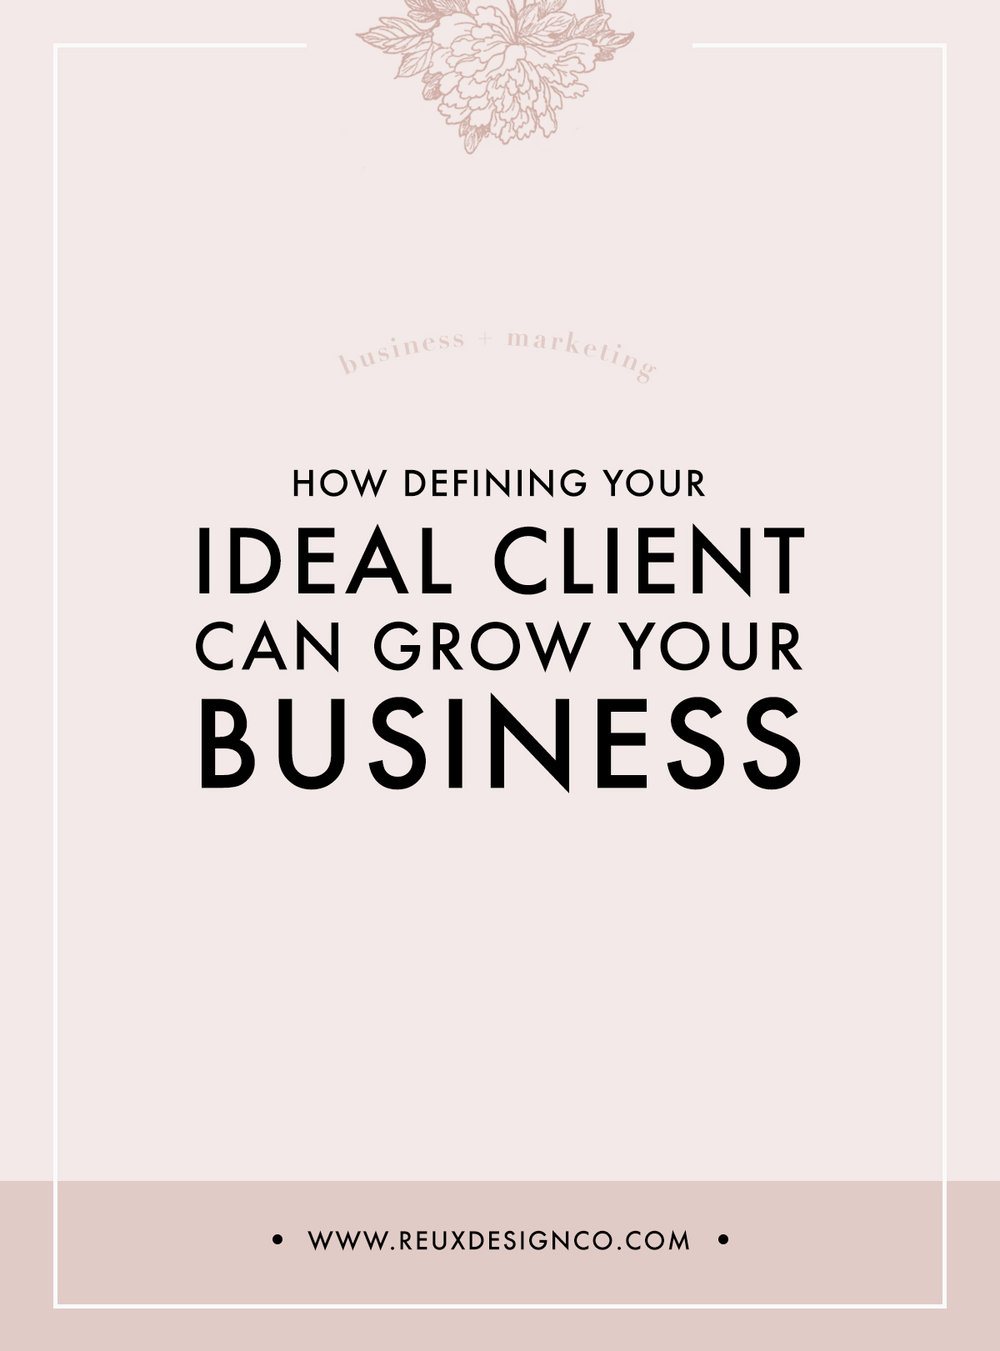 How Defining Your Ideal Client can Grow your Business | reux design  co.